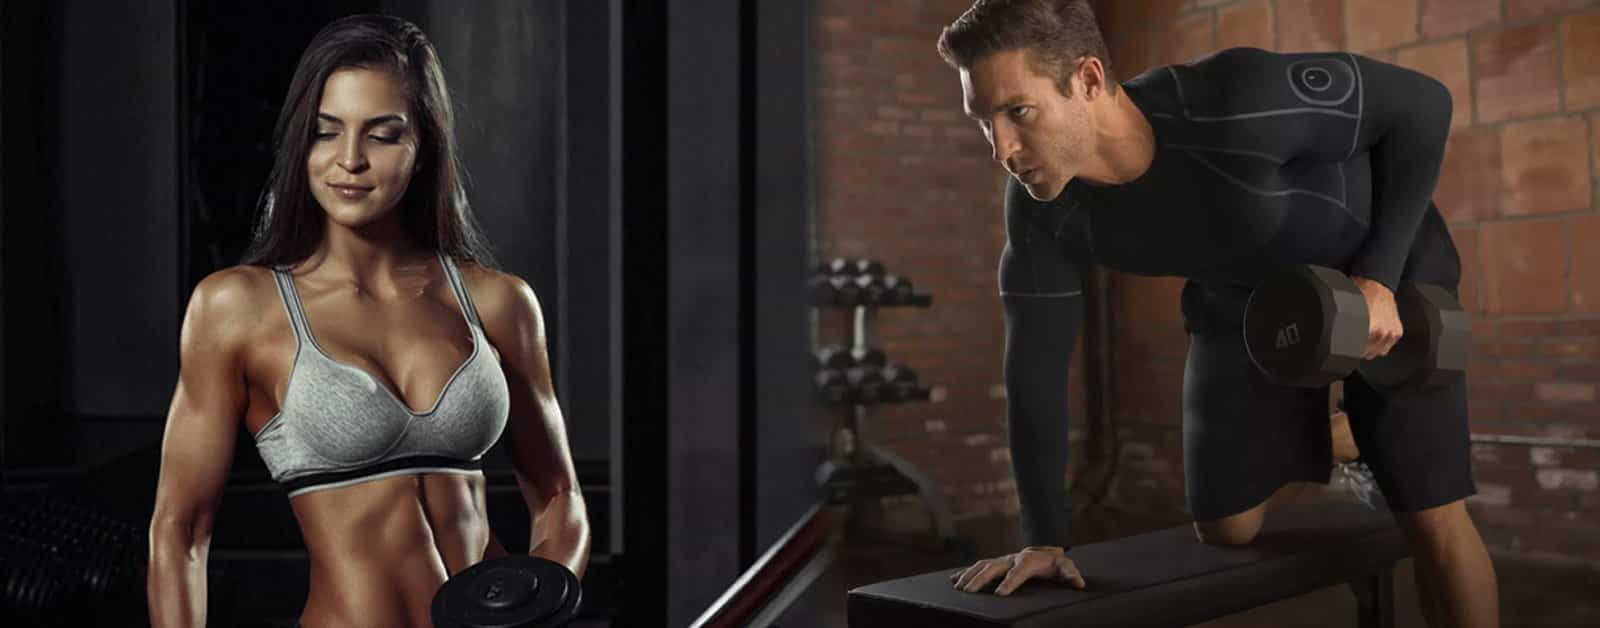 Fitness Clothes Manufacturer